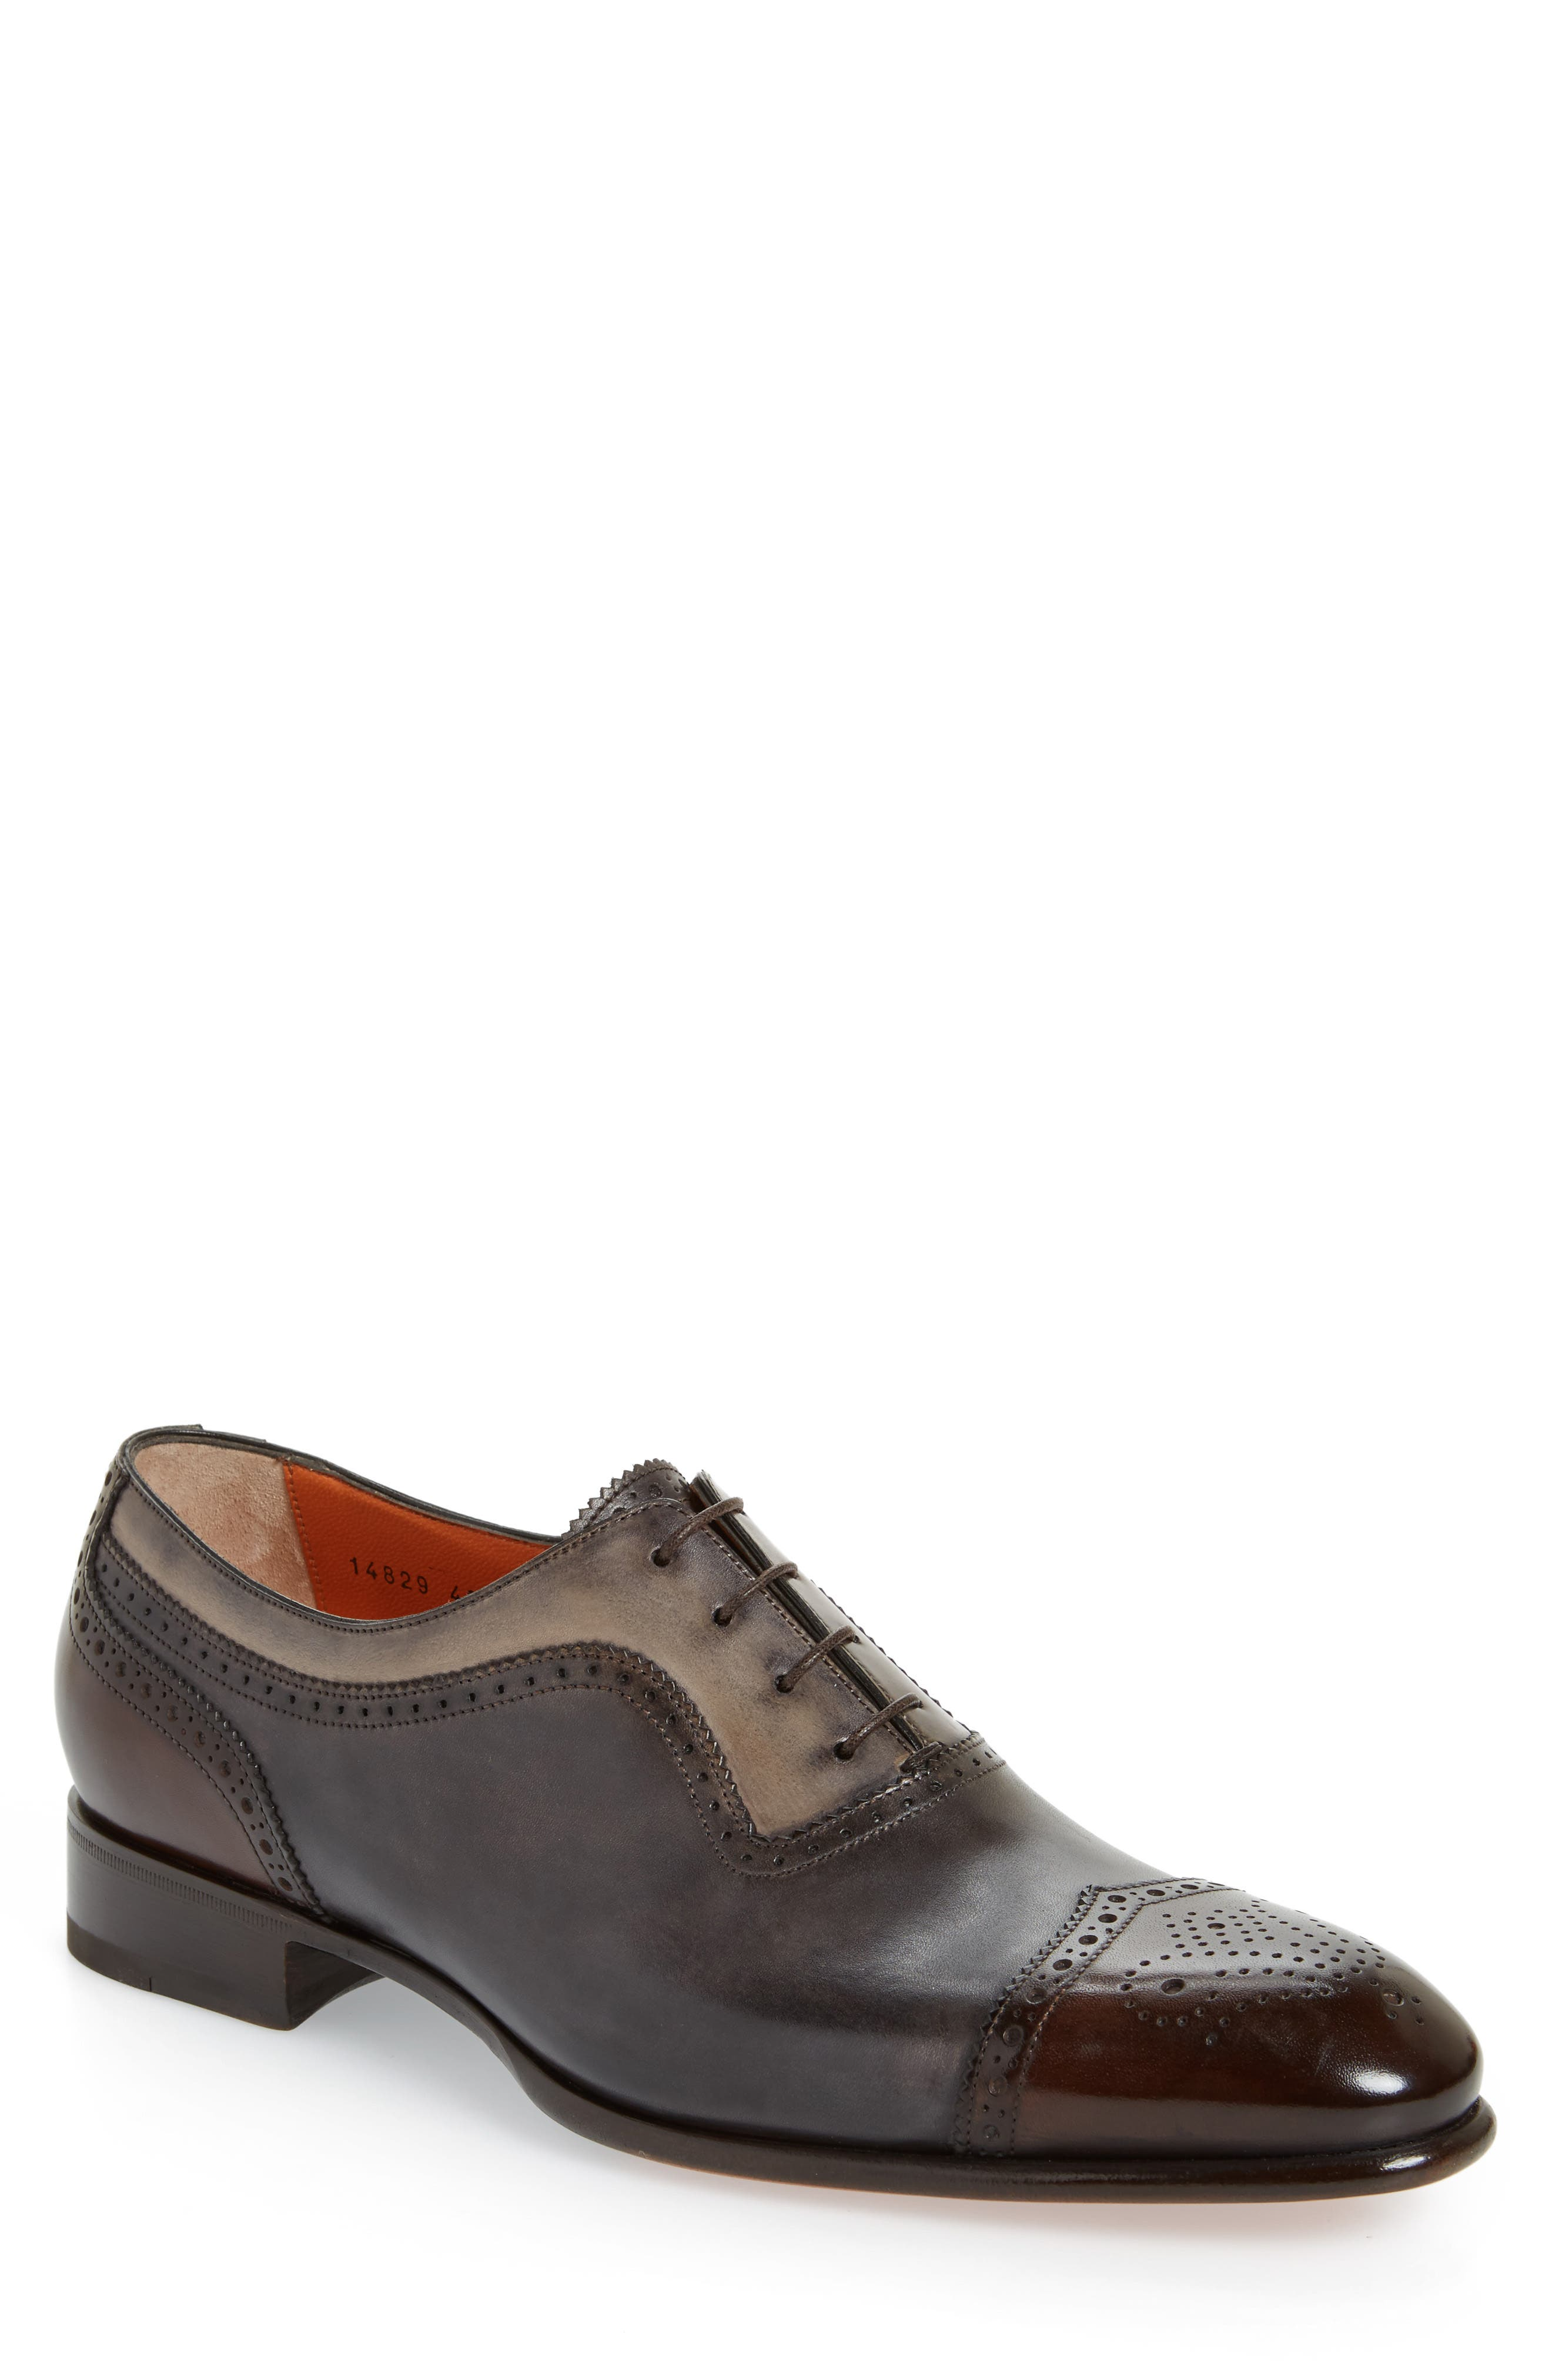 Santoni Fatte-A-Mano Medallion Toe Oxford (Men)